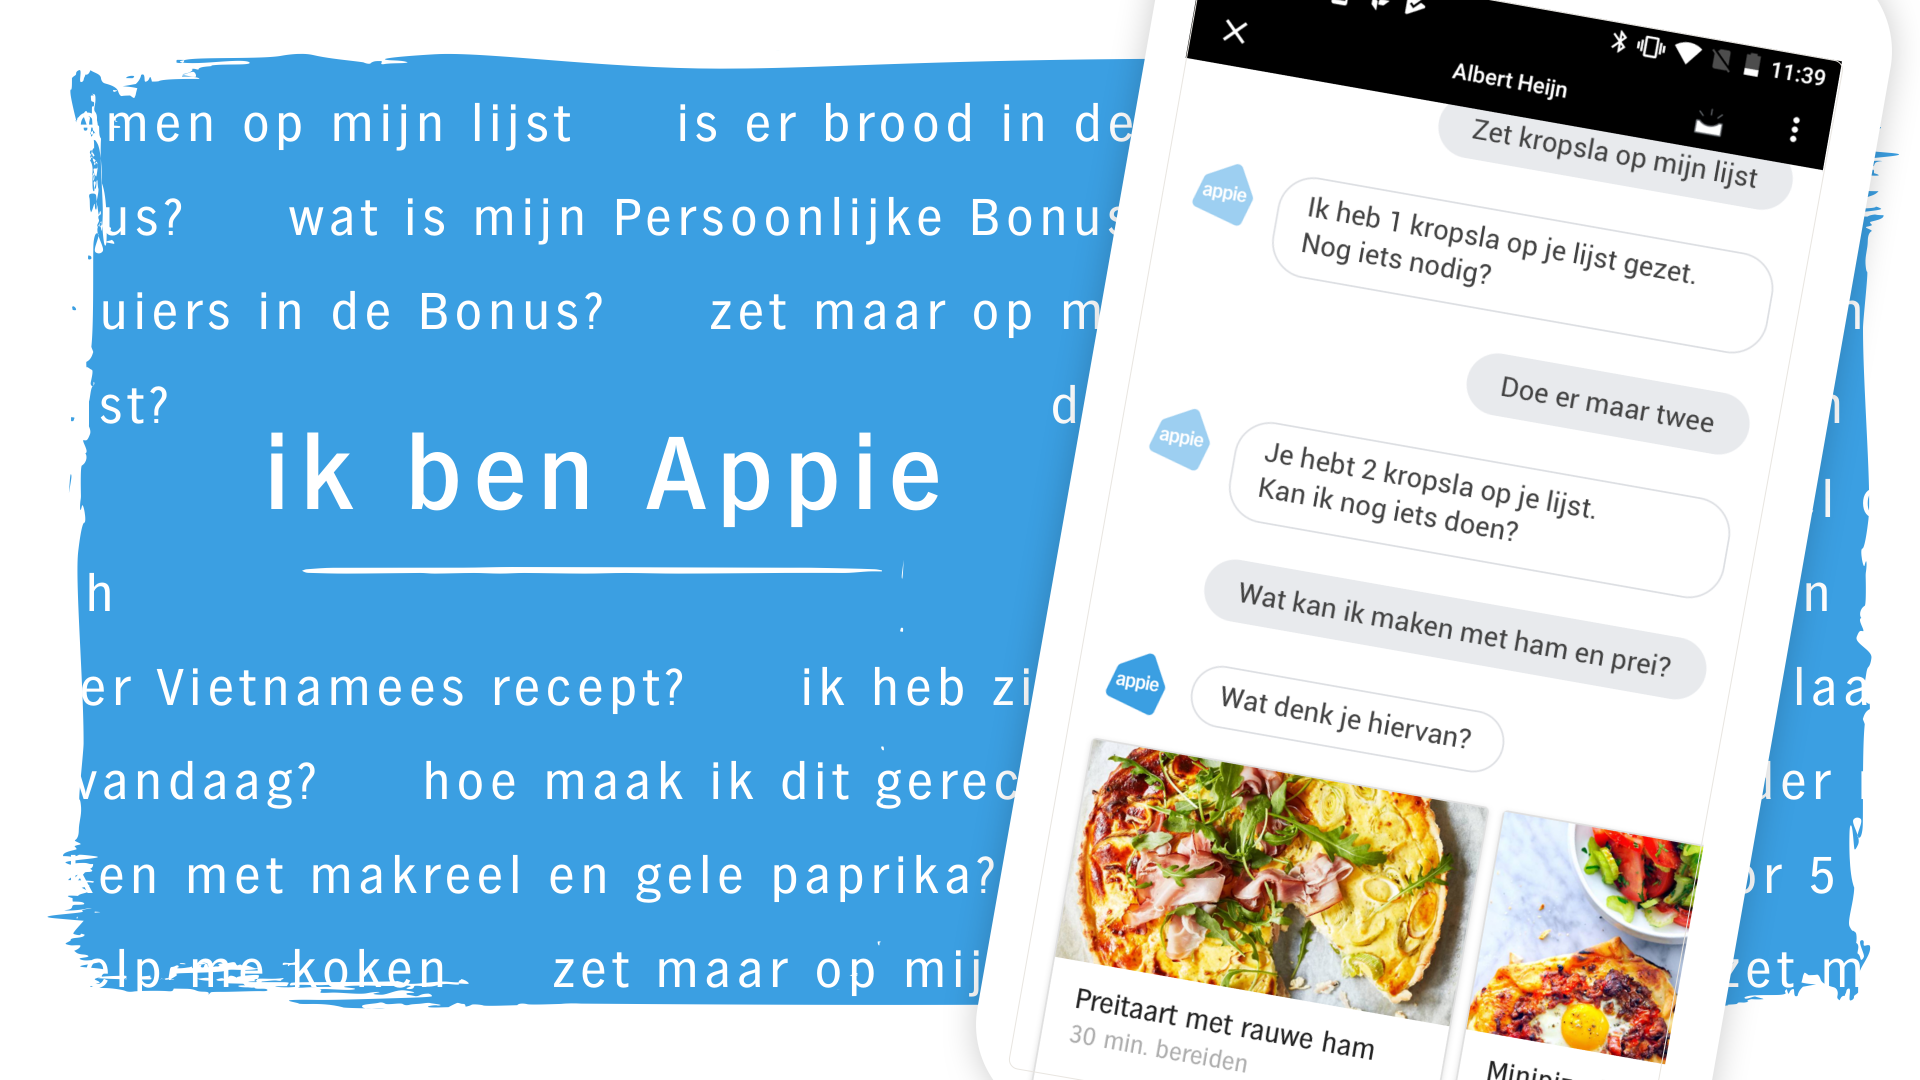 Albert Heijn via Google Assistent